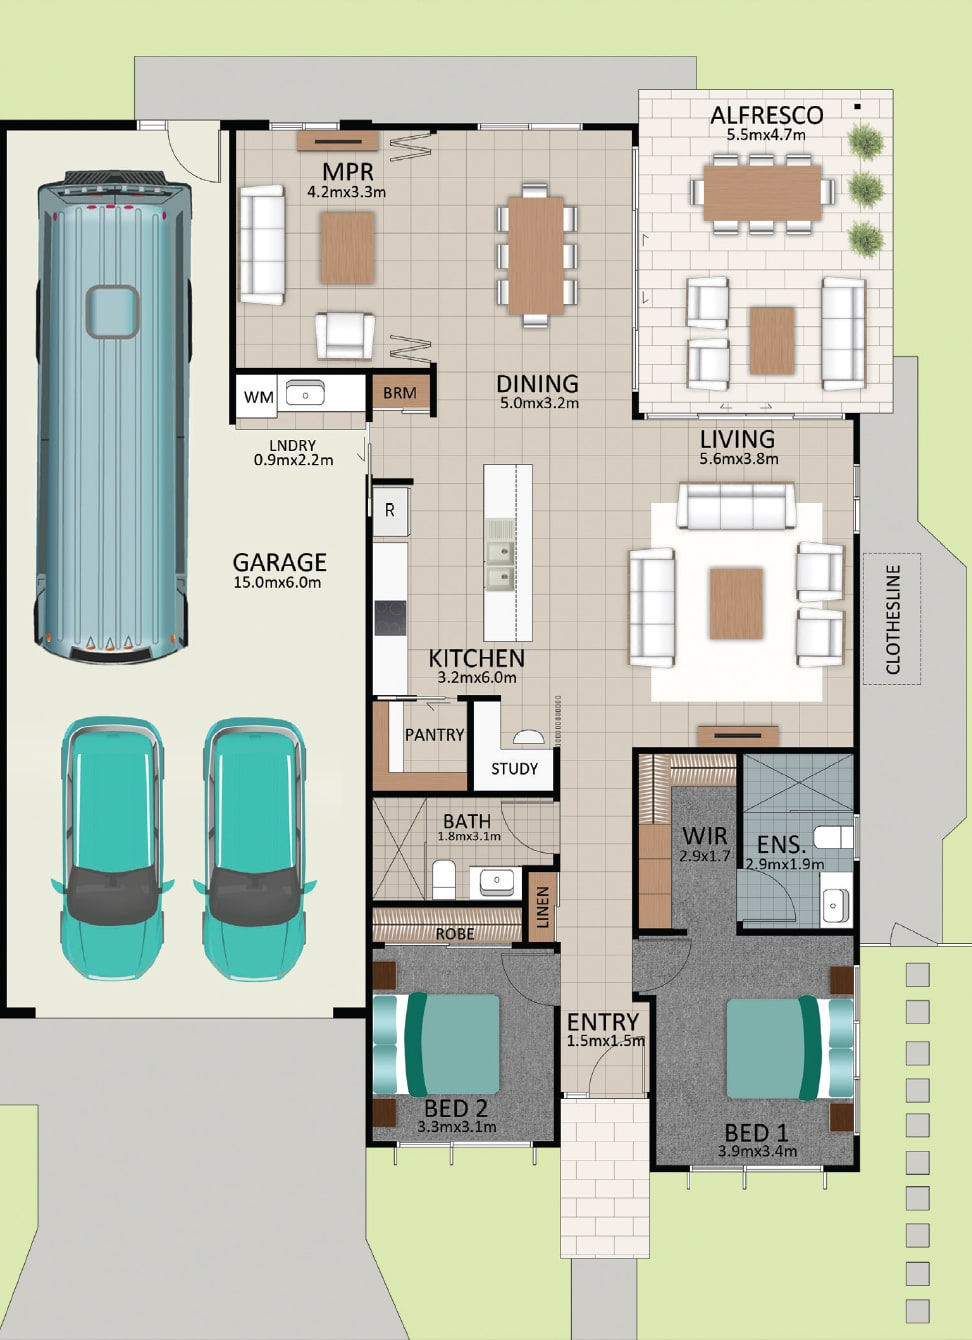 LAT25 Floorplan GAL LOT 228 FEB2021 V1 - Lot 228